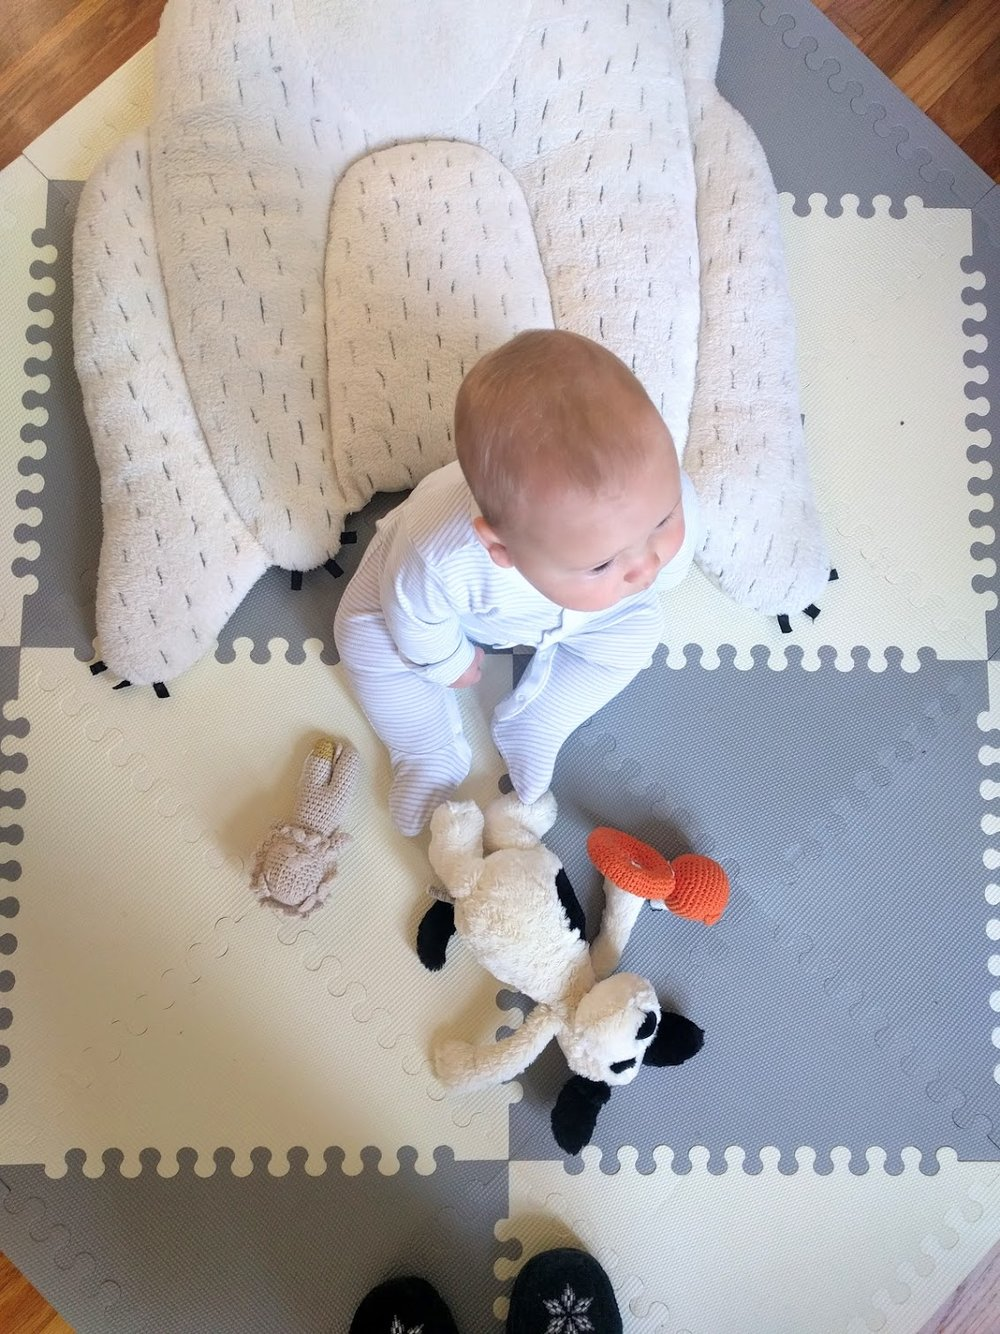 The gray and white plastic play mat -- good for drooling & falling on.